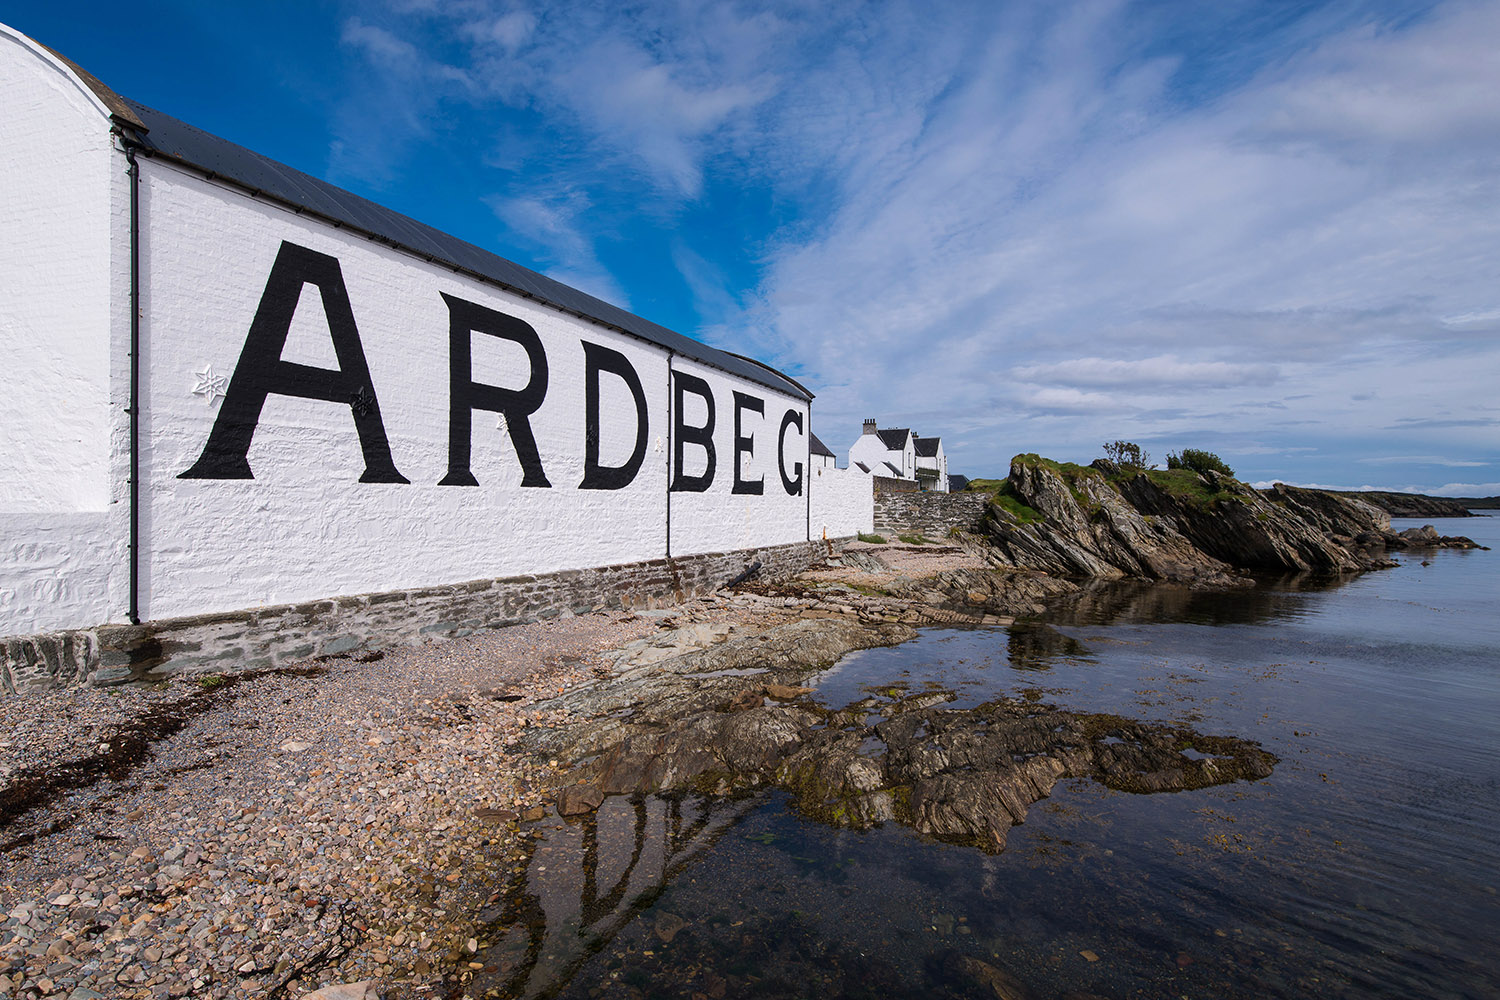 Ardbeg Distillery, a Scottish whisky distillery that is featured on our whisky tour - Scottish Spirit